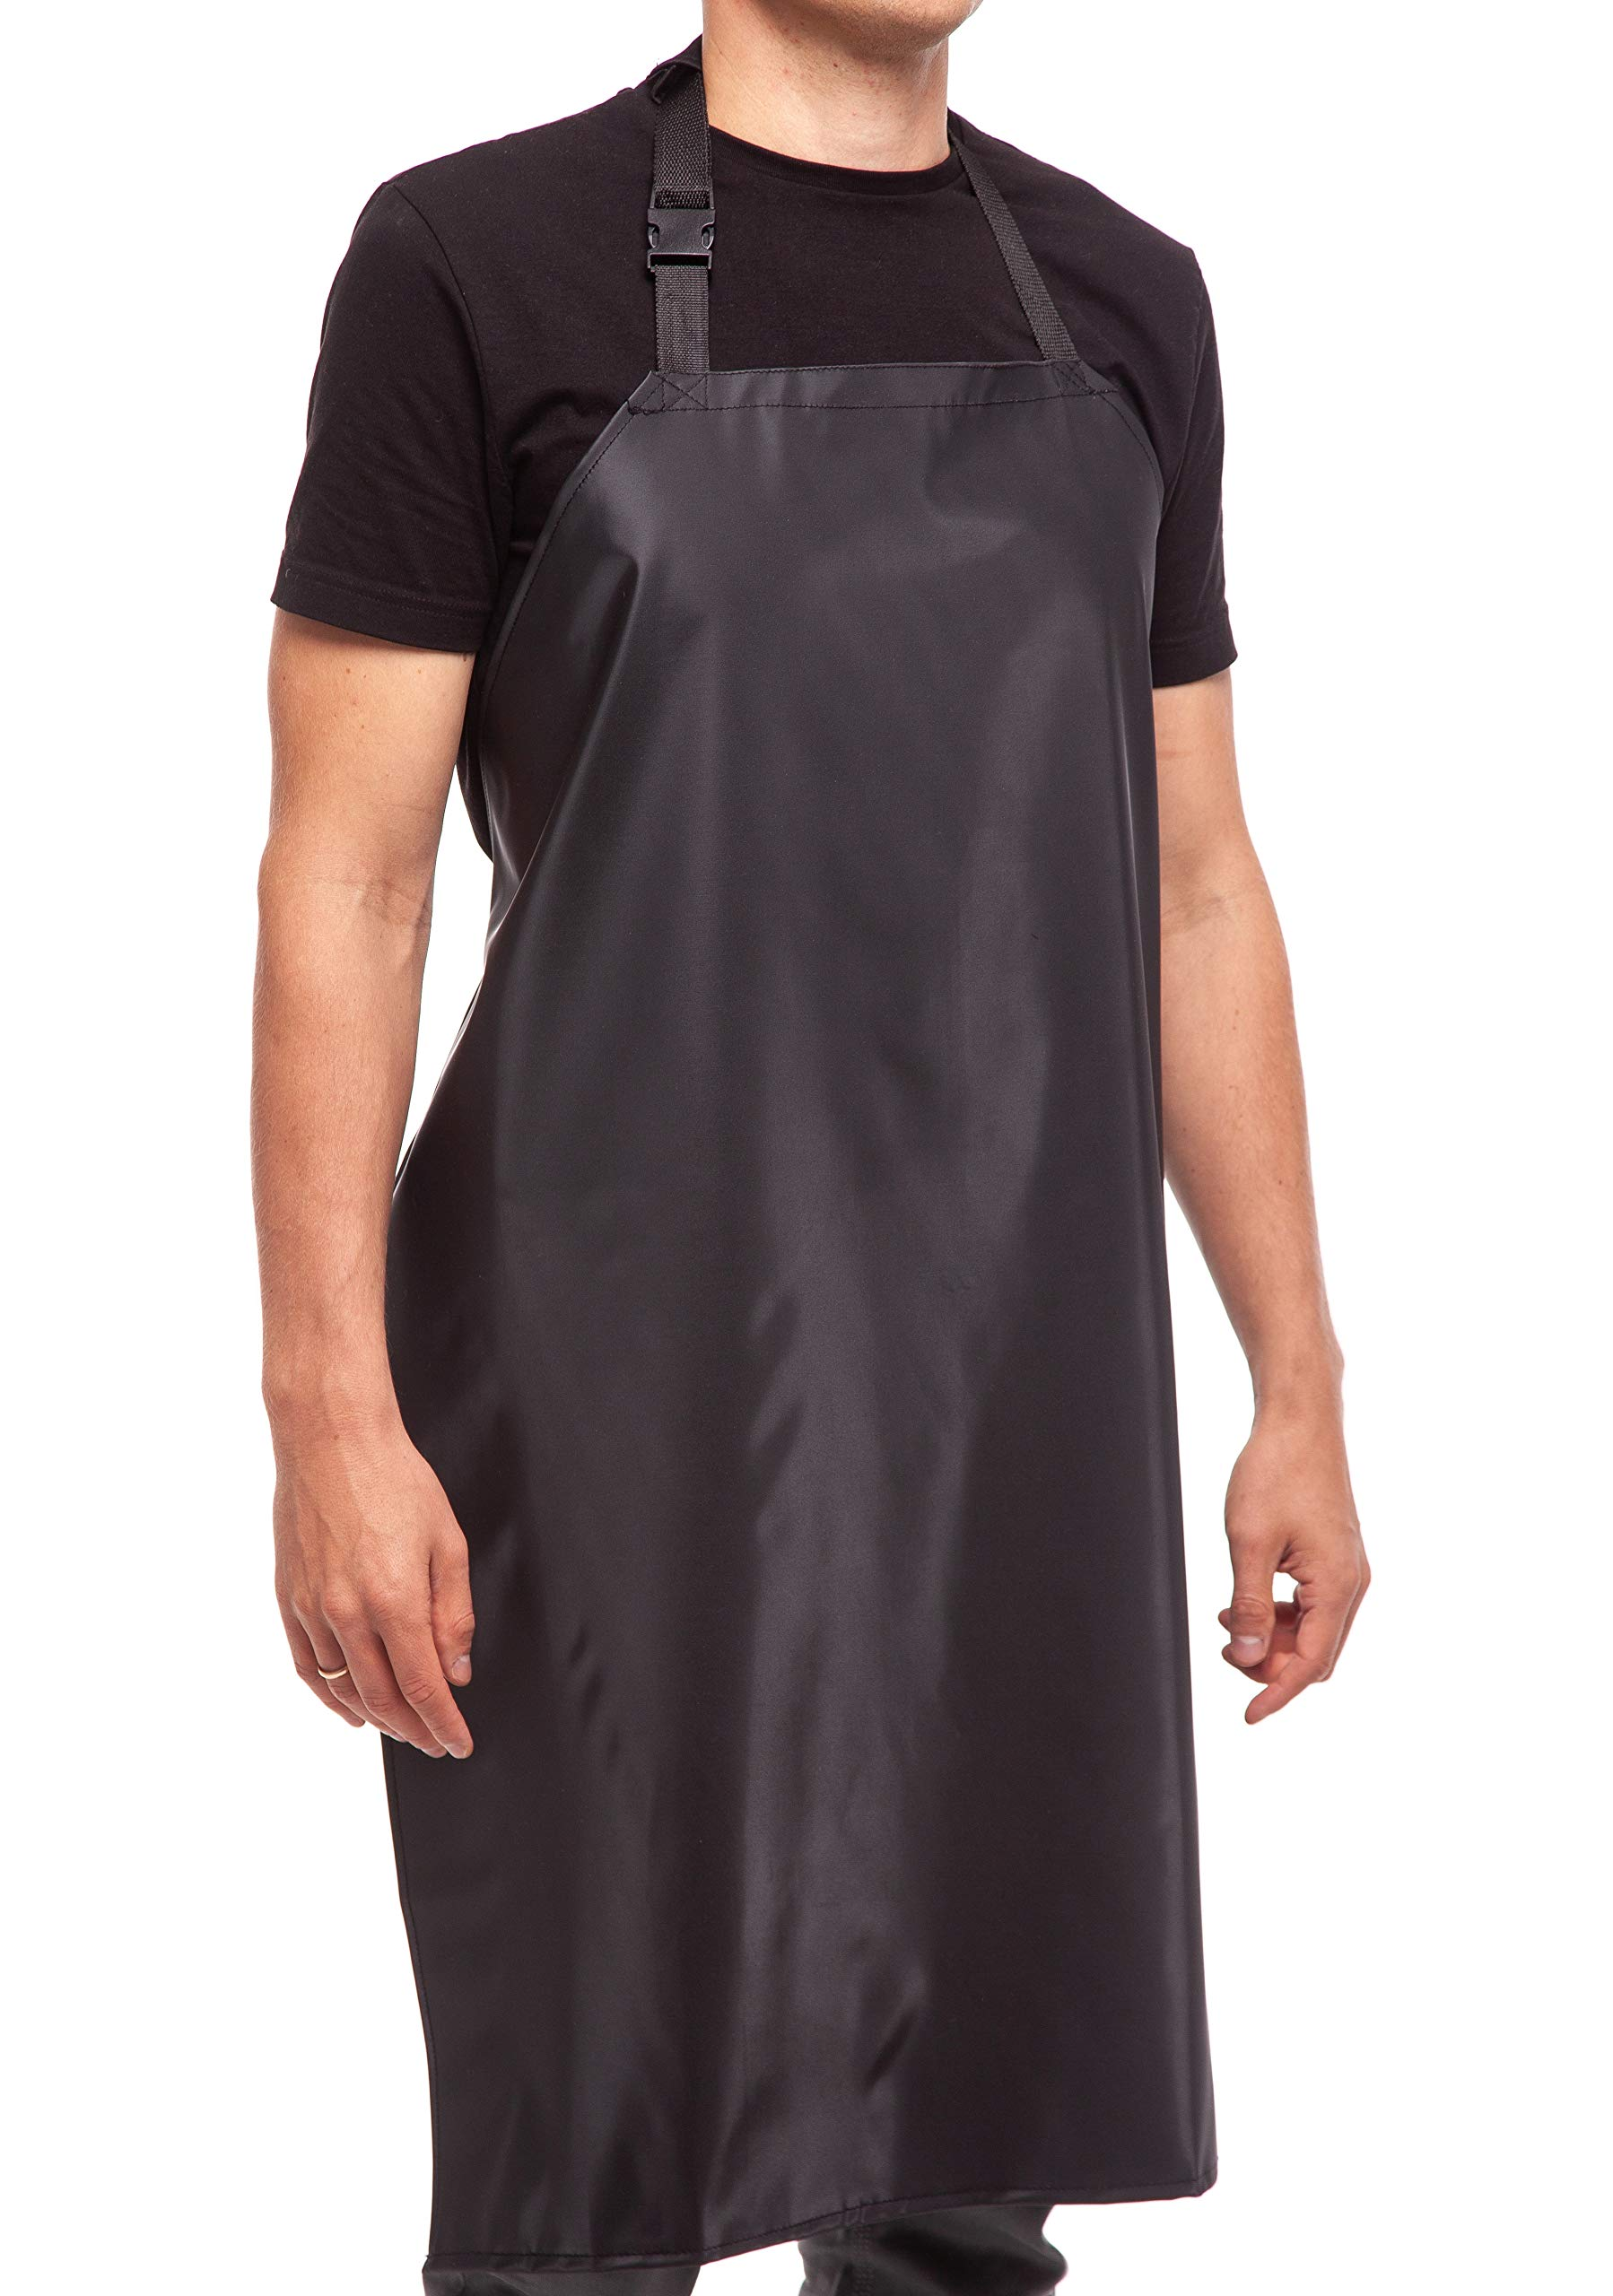 """Waterproof Rubber Vinyl Apron - 35"""" Light Duty Model - Best for Staying Dry When Dishwashing, Lab Work, Butcher, Dog Grooming, Cleaning Fish, Projects - Industrial Chemical Resistant Plastic"""